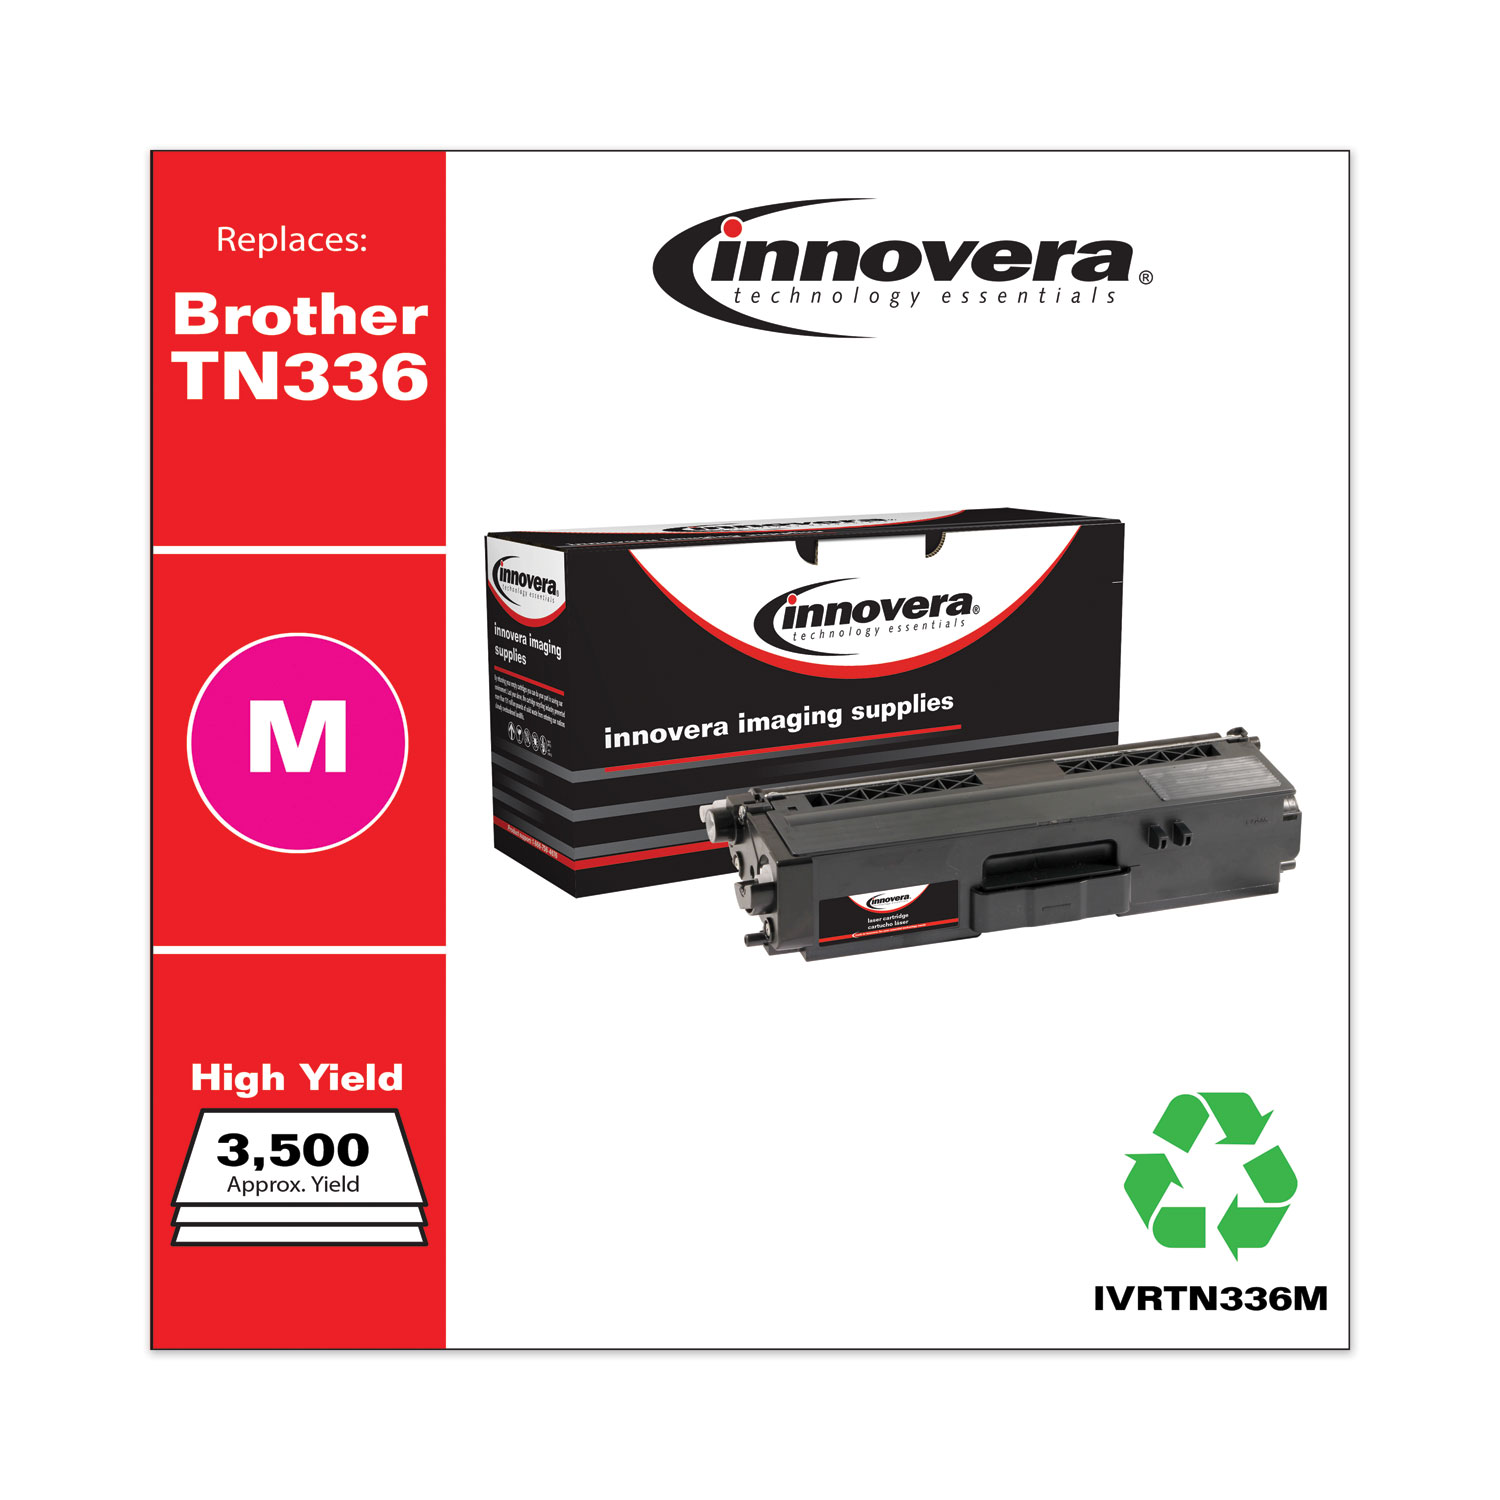 Remanufactured Magenta High-Yield Toner, Replacement for Brother TN336M, 3,500 Page-Yield IVRTN336M